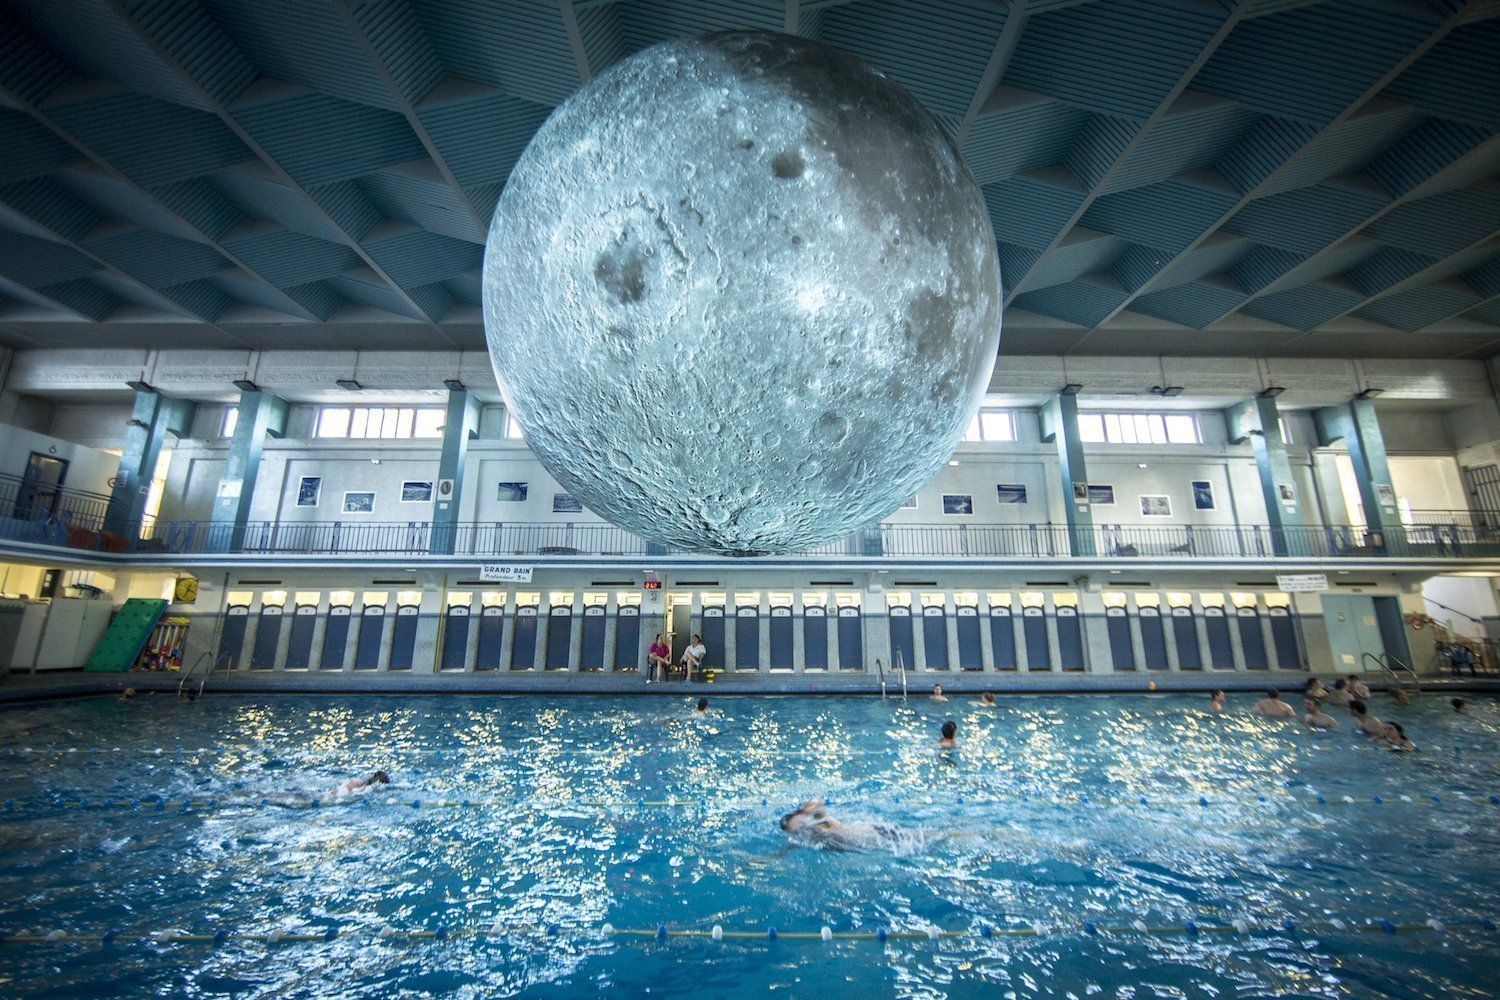 The pool under the moon